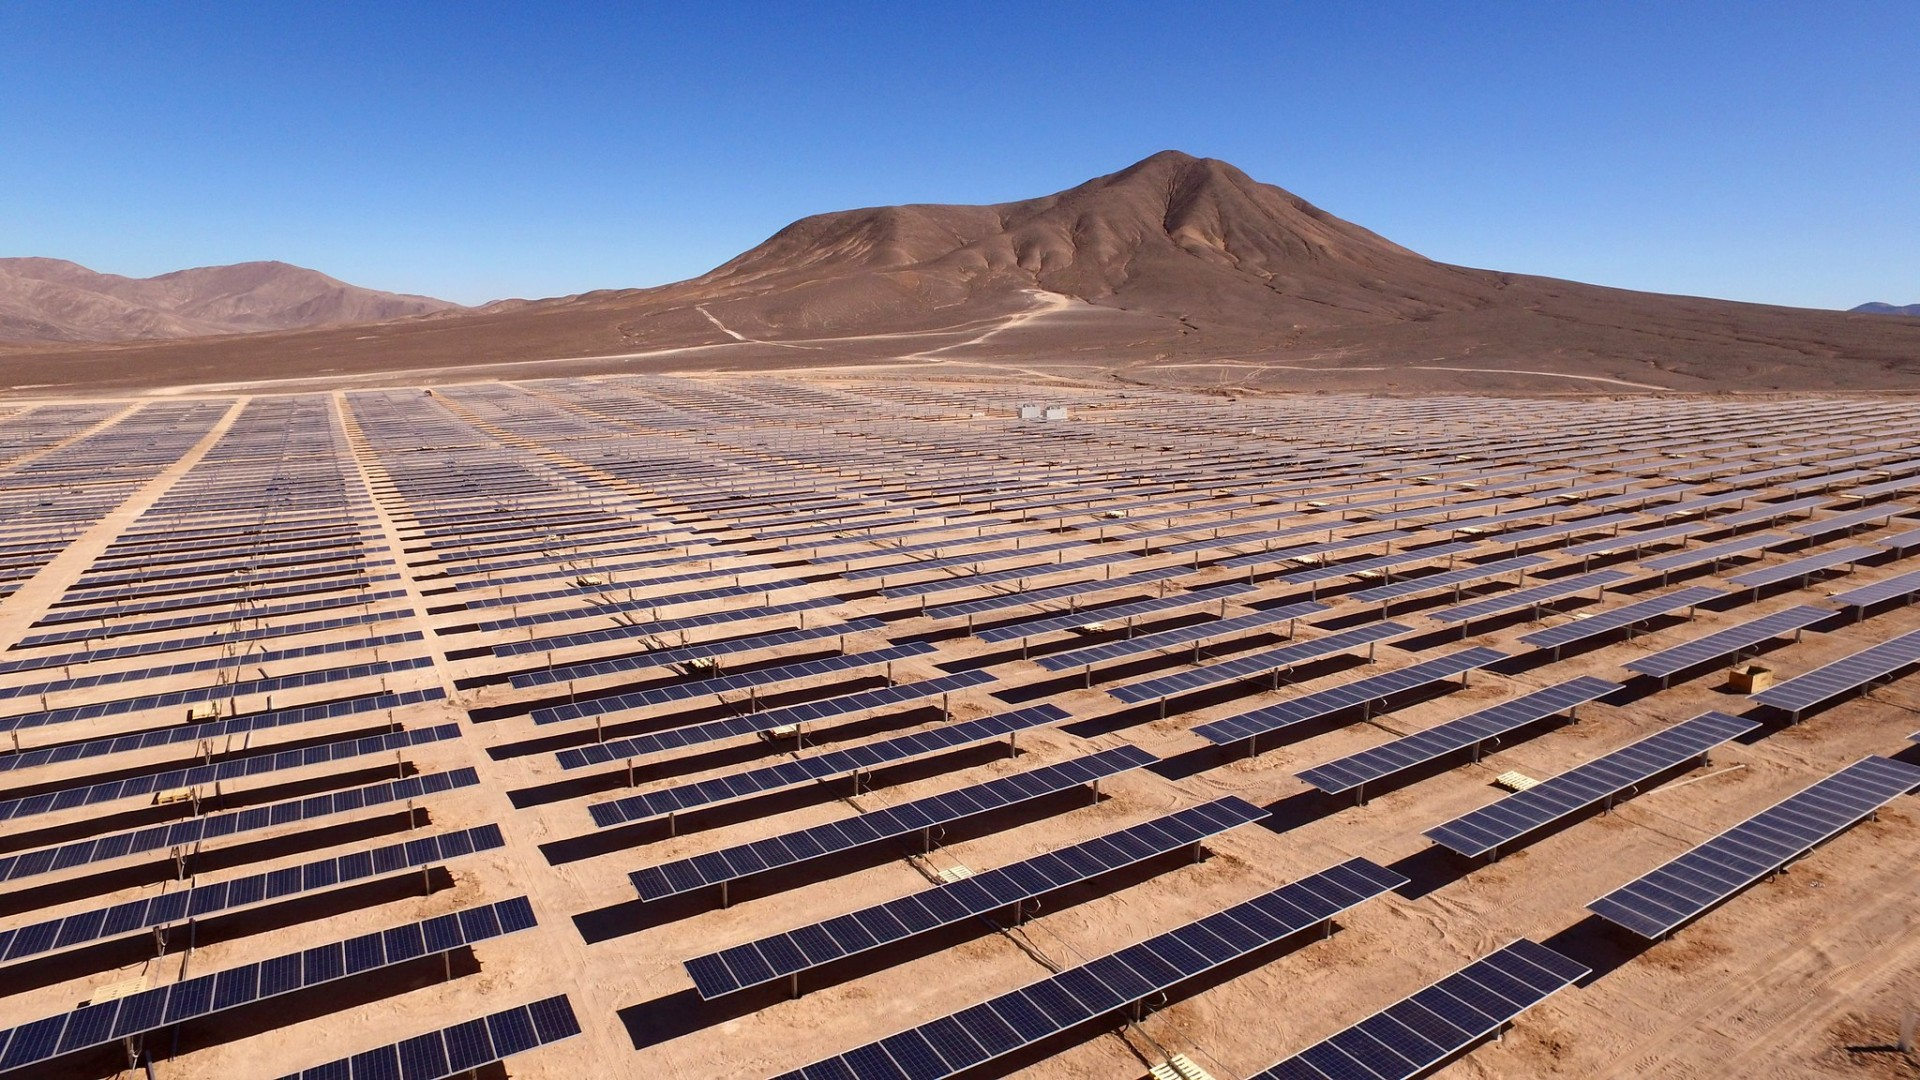 The Oberon project, which will have an installed generation capacity of 150MW upon completion, will feature PV modules supplied by Hanwha Q CELLS. Image: RecondOil / Flickr